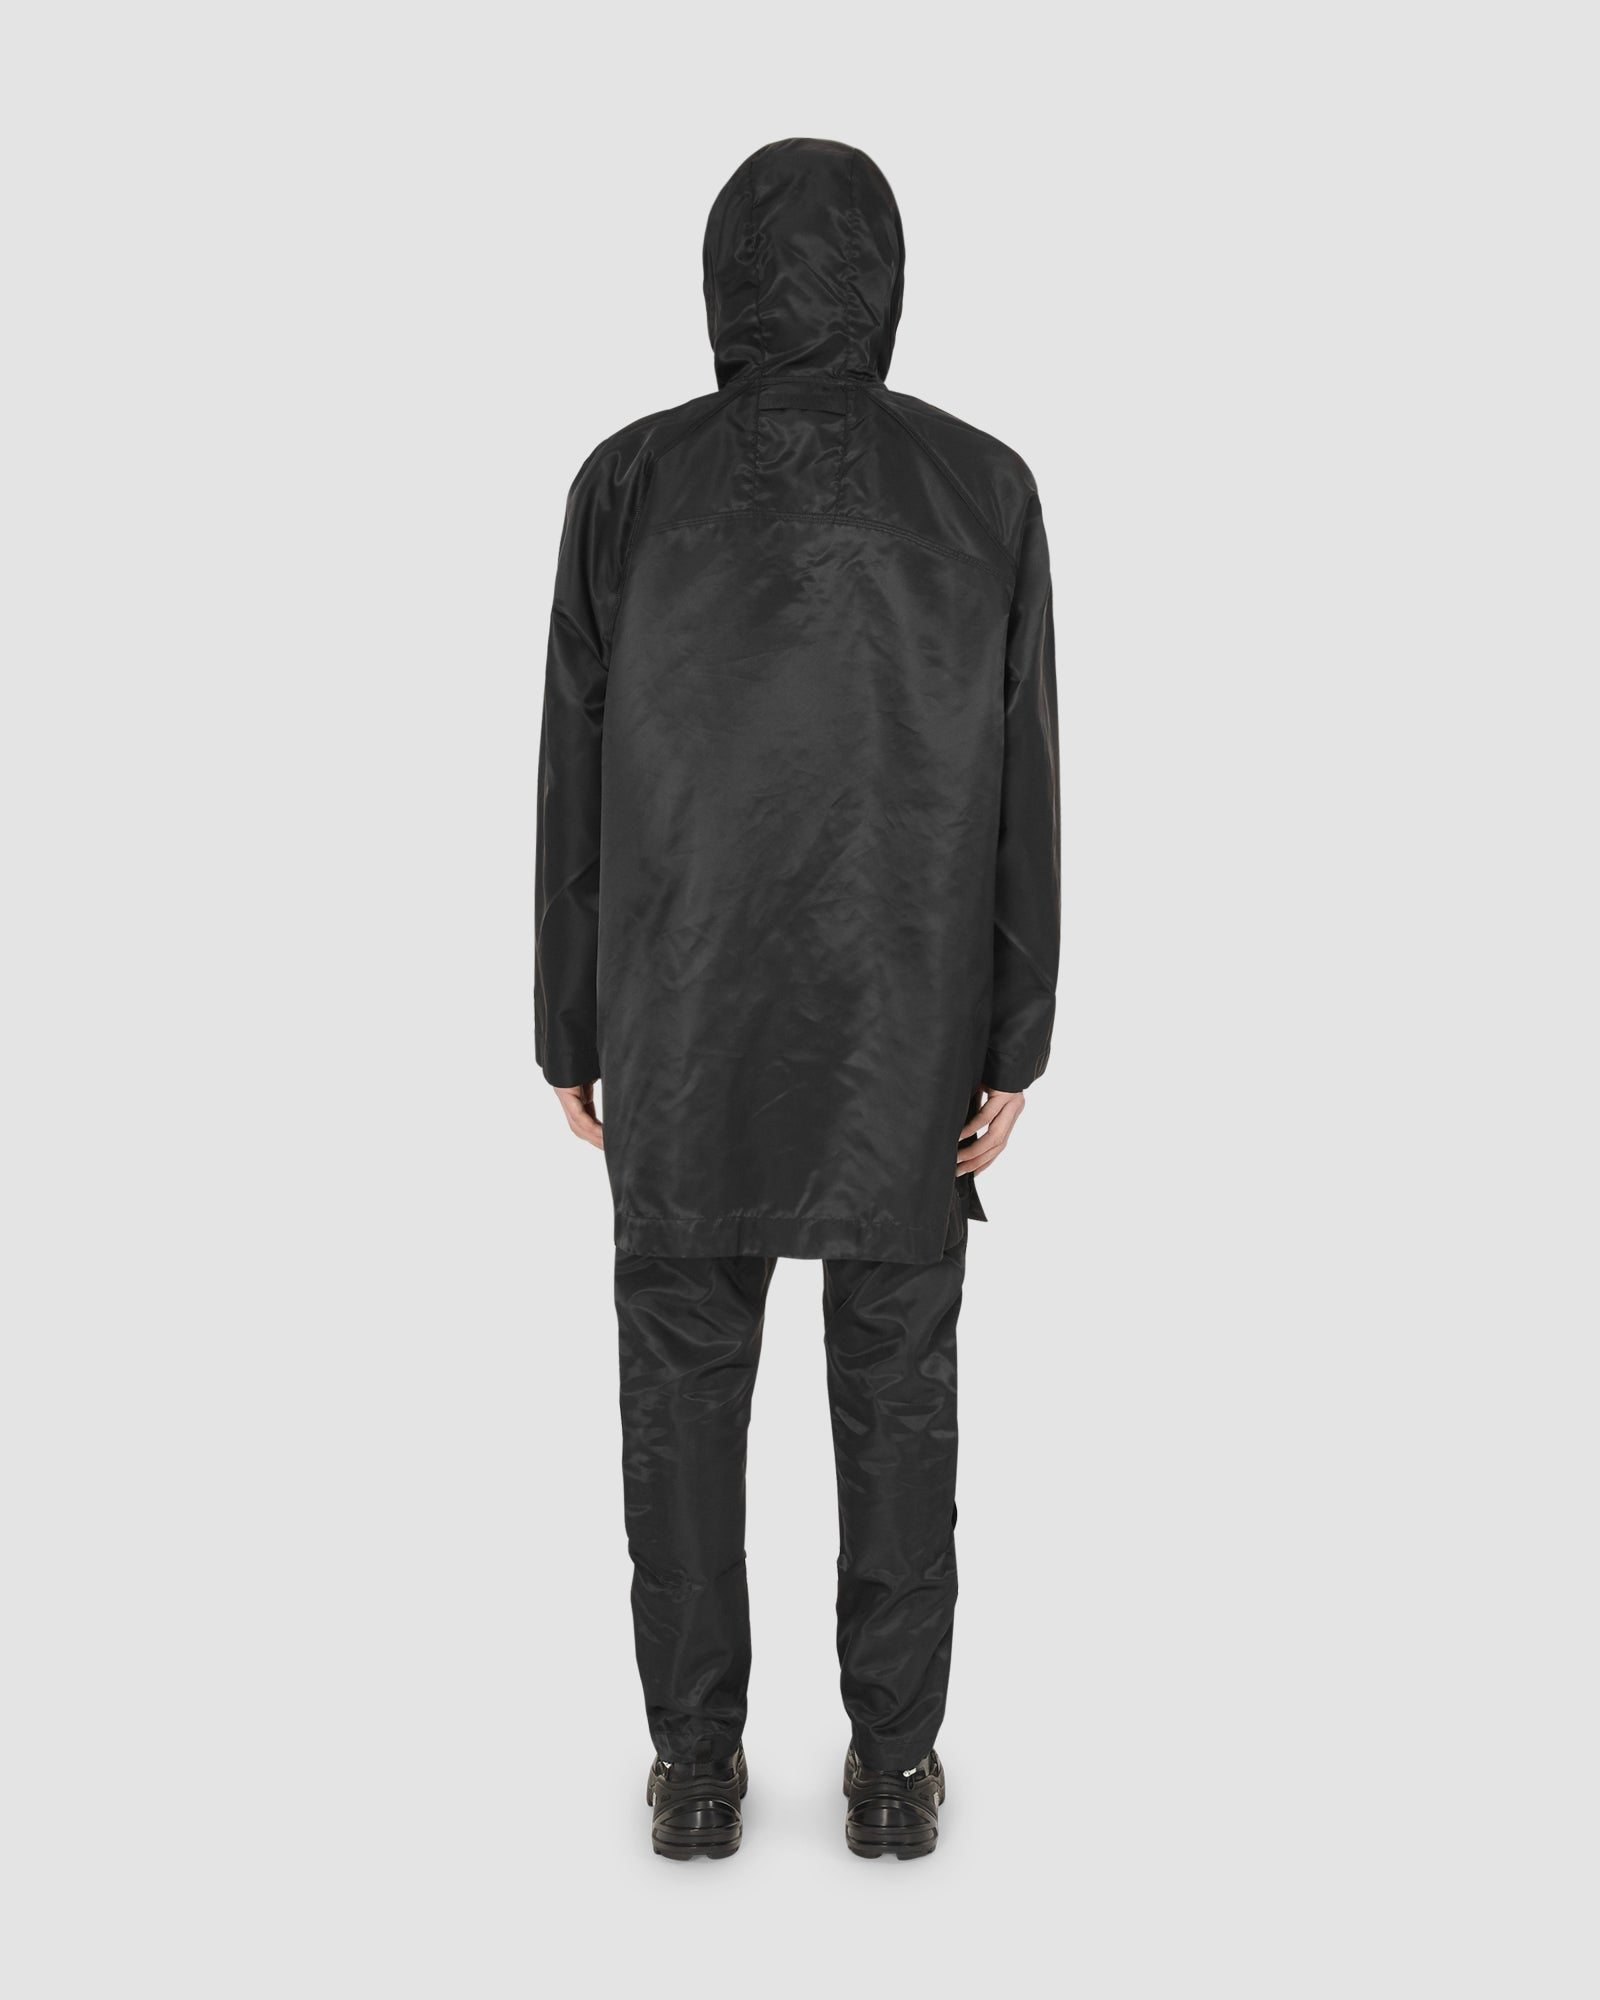 1017 ALYX 9SM | BLACK OVERSIZED PULLOVER | Outerwear | BLACK, Google Shopping, Man, MEN, Outerwear, S20, S20EXSH